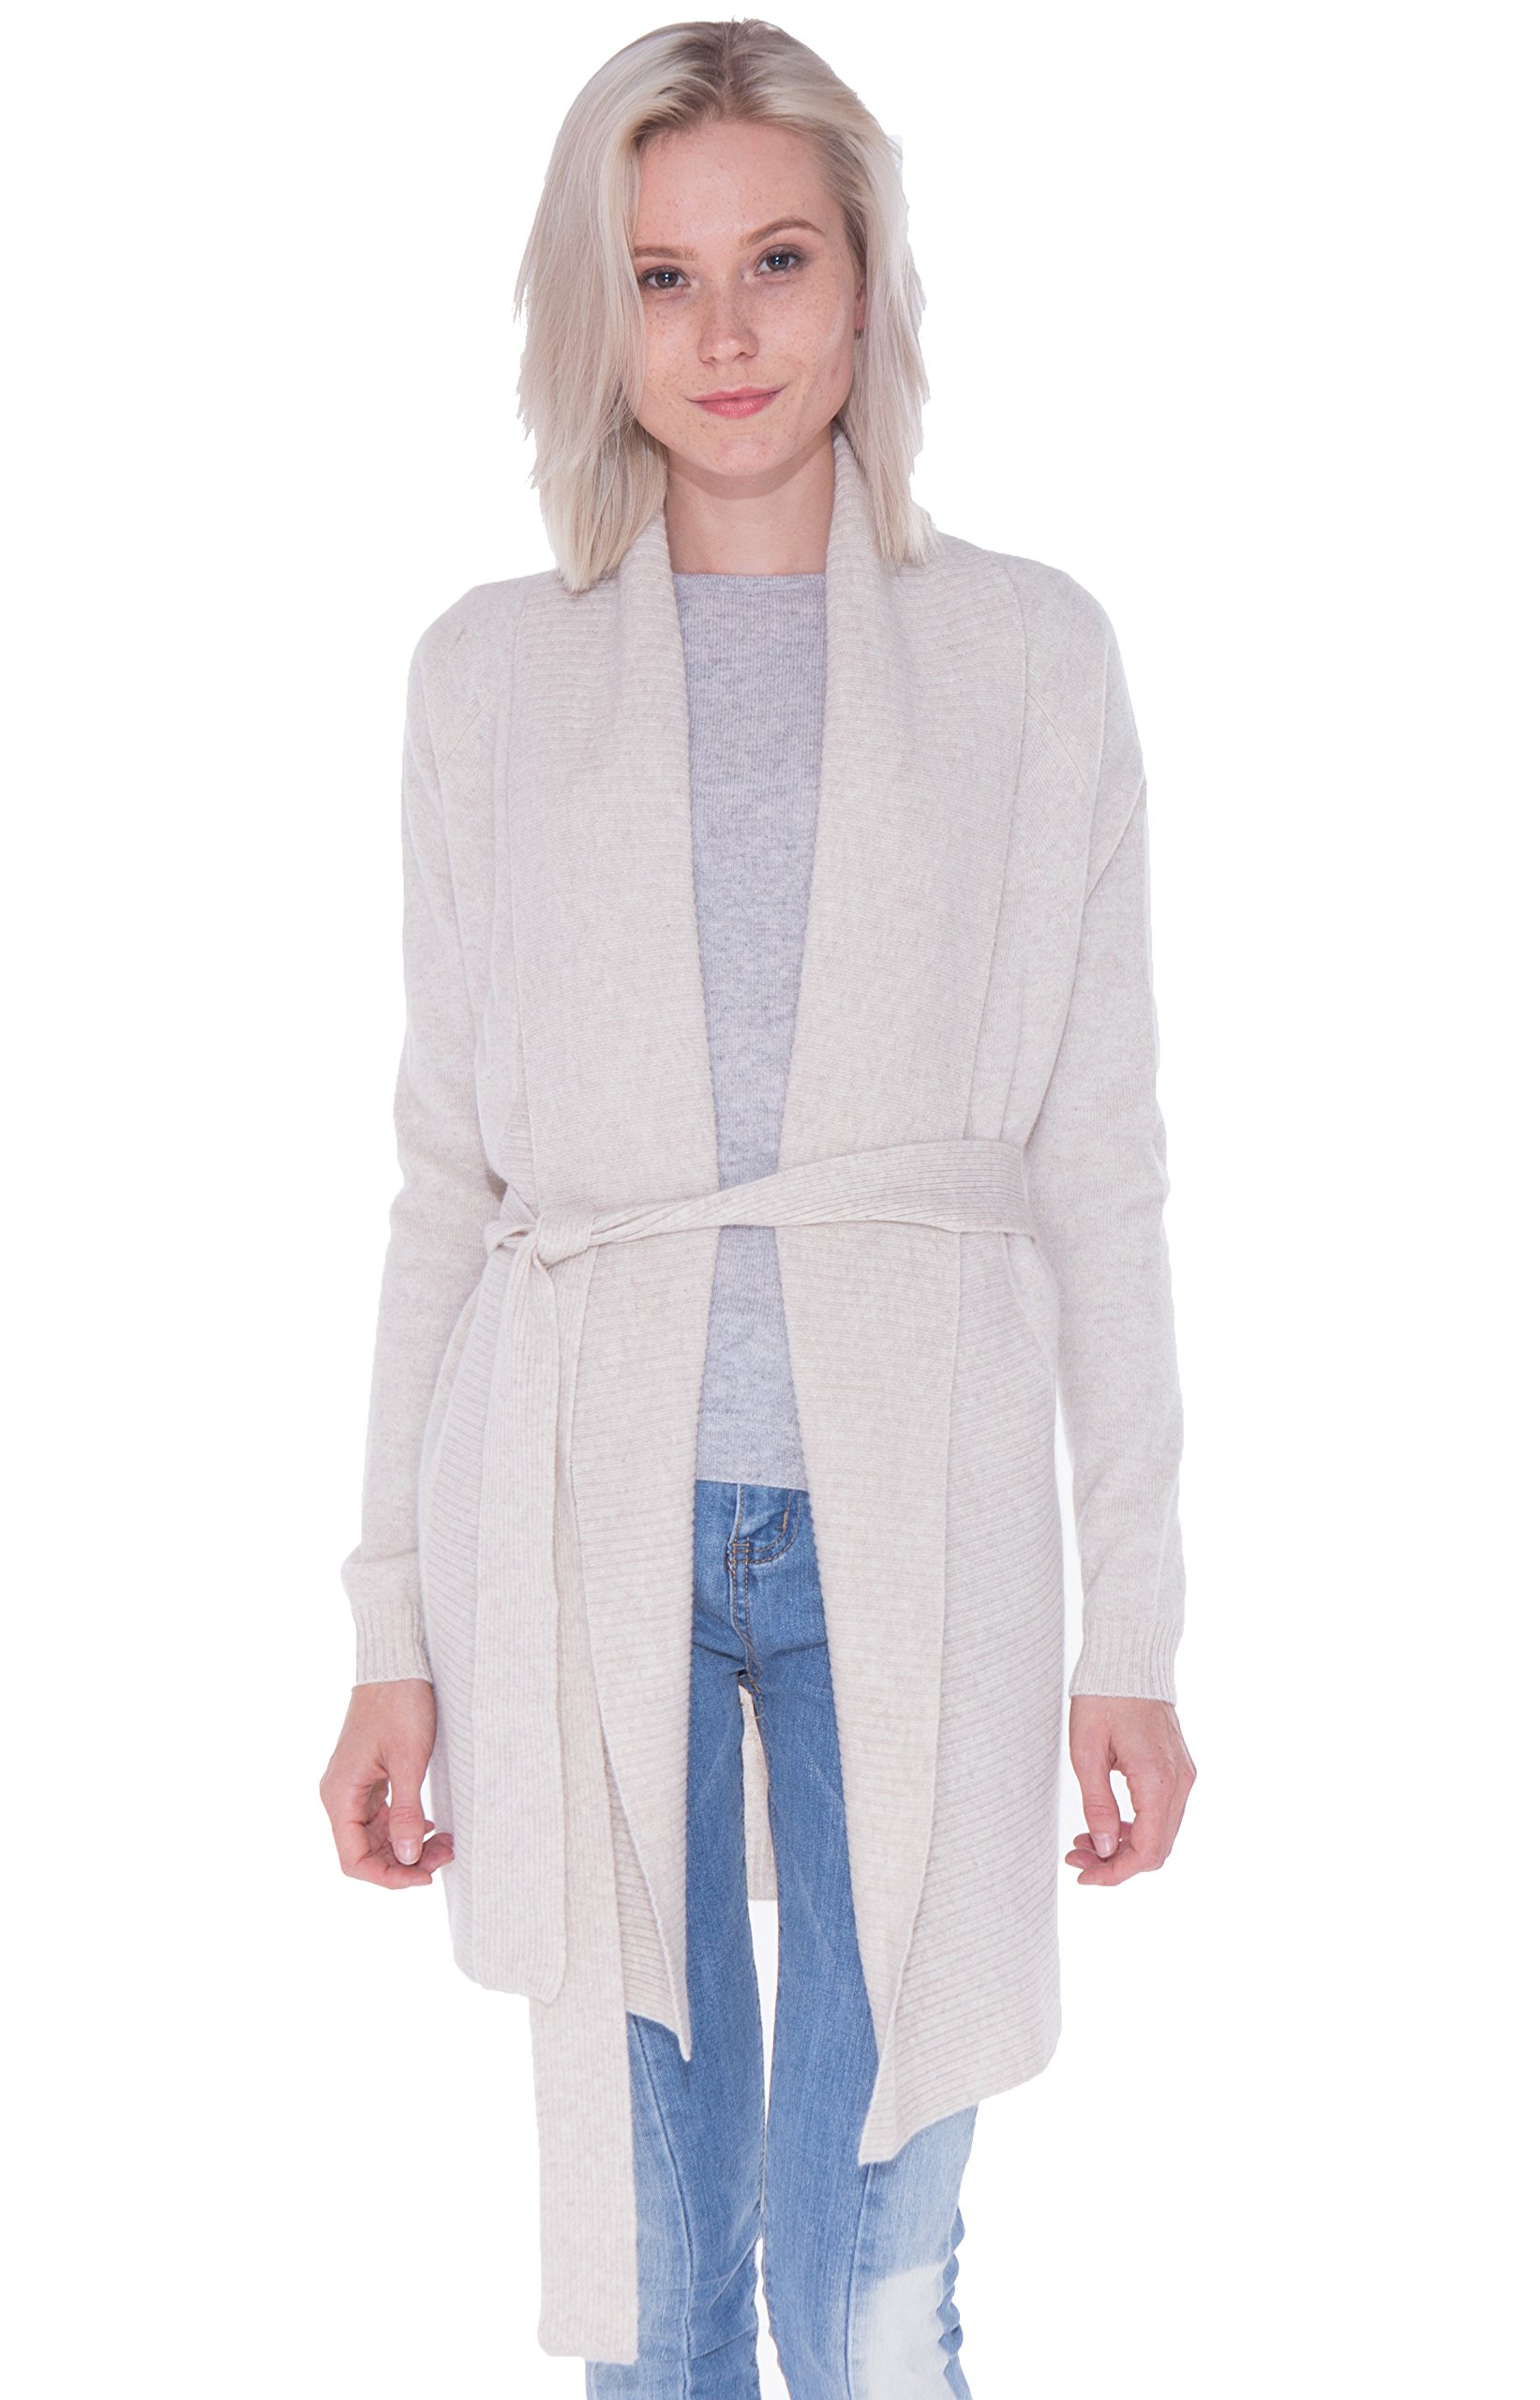 LEBAC Women's 100% Cashmere Ribbed Shawl Collar Long Cardigan Waist Tie Jacket